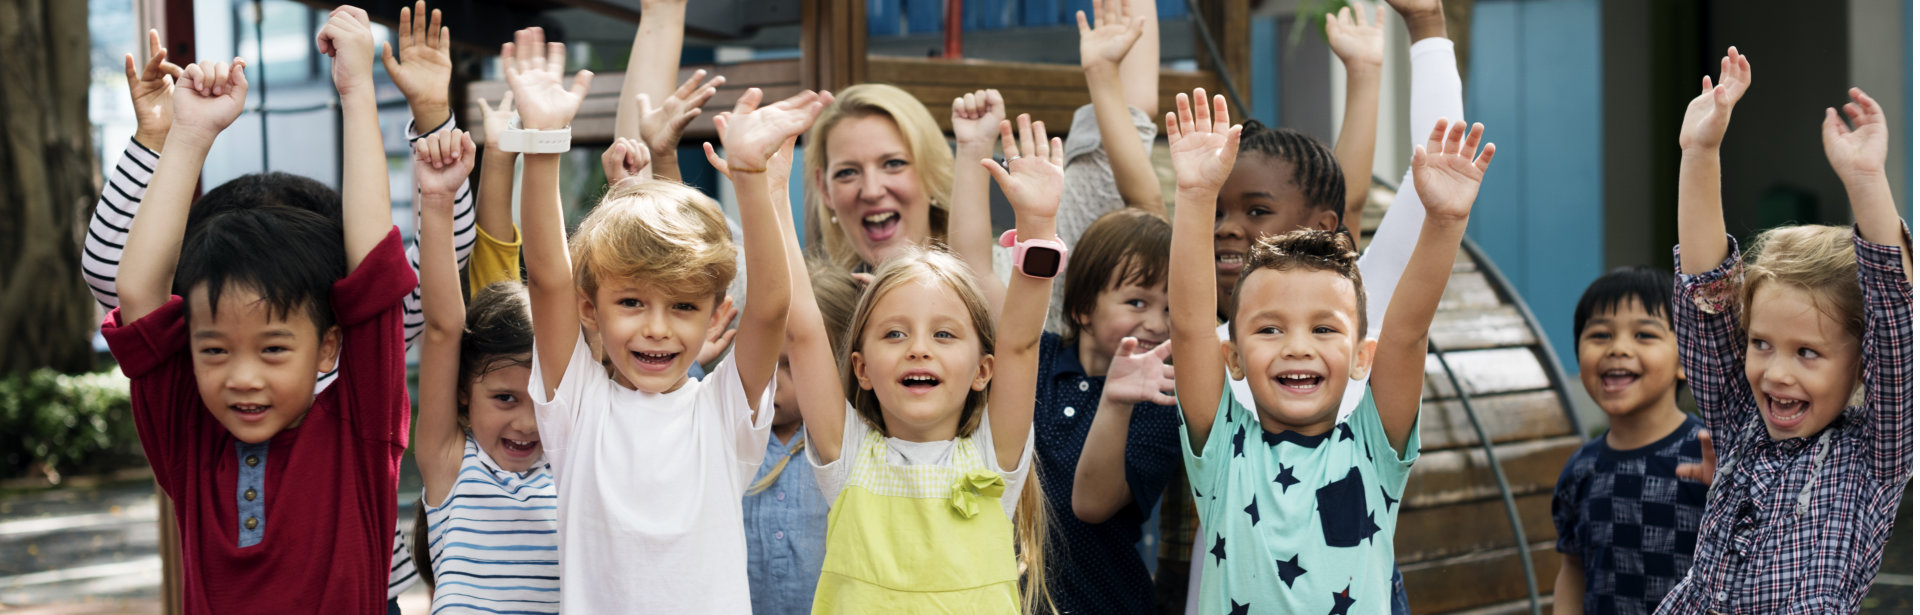 kids raising their hands